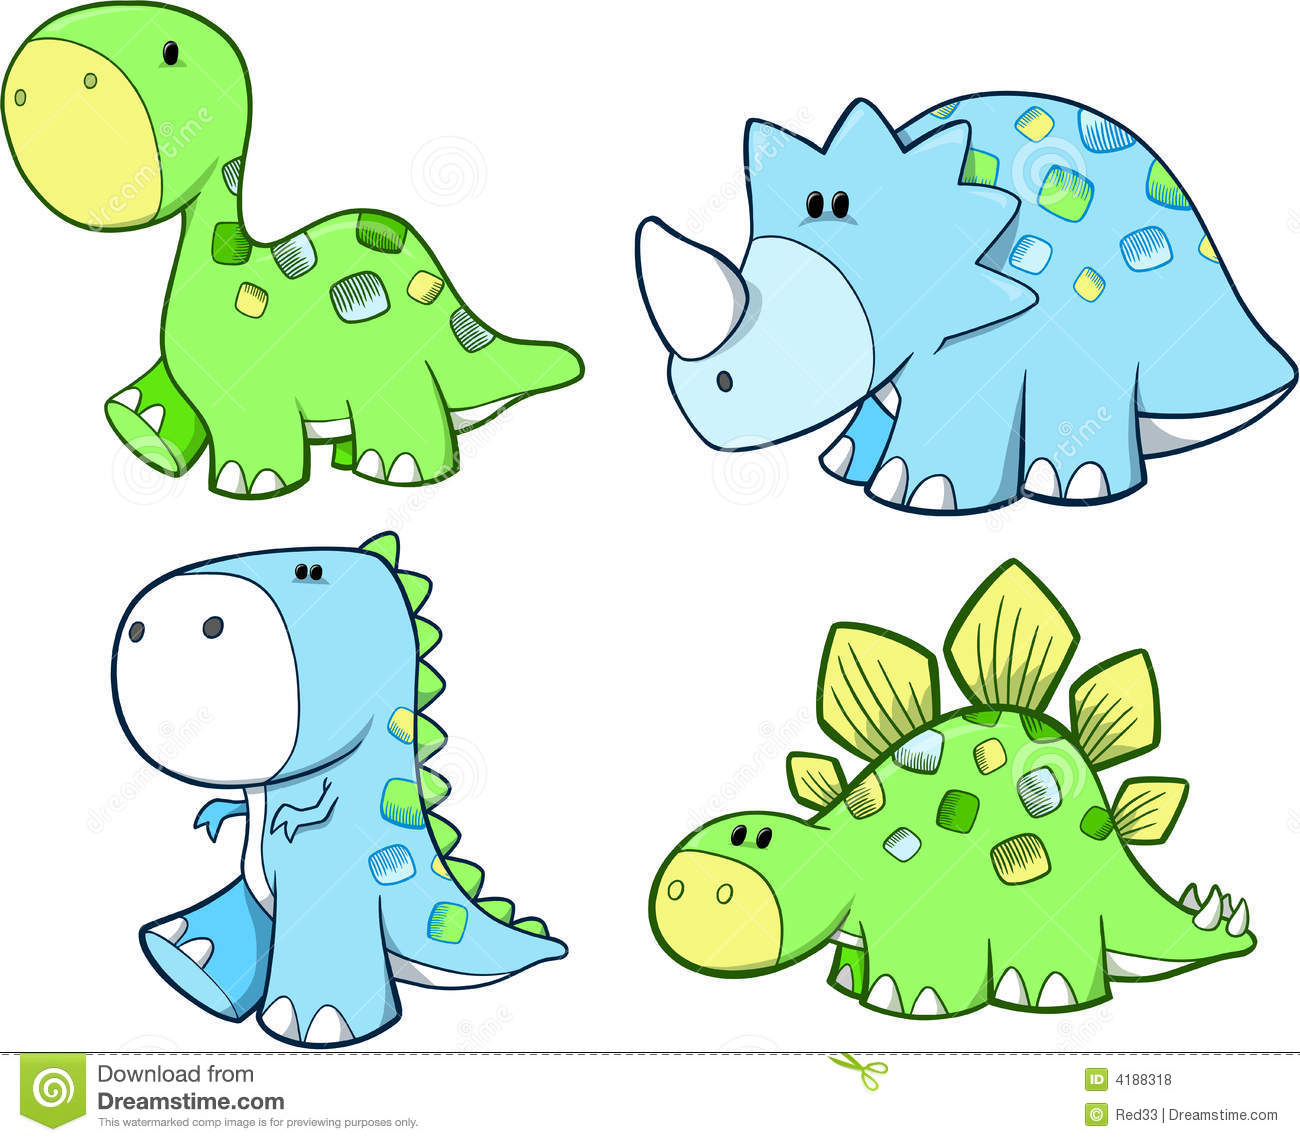 68+ Cute Dinosaur Clipart | ClipartLook royalty free download